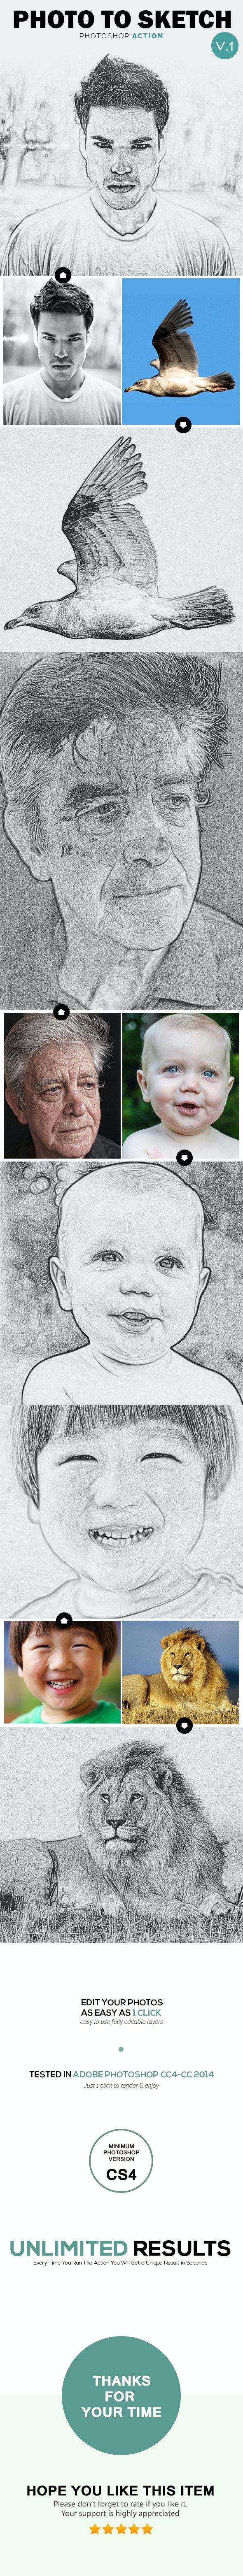 Photo to Sketch V1 - Photoshop Action - Photo Effects Actions